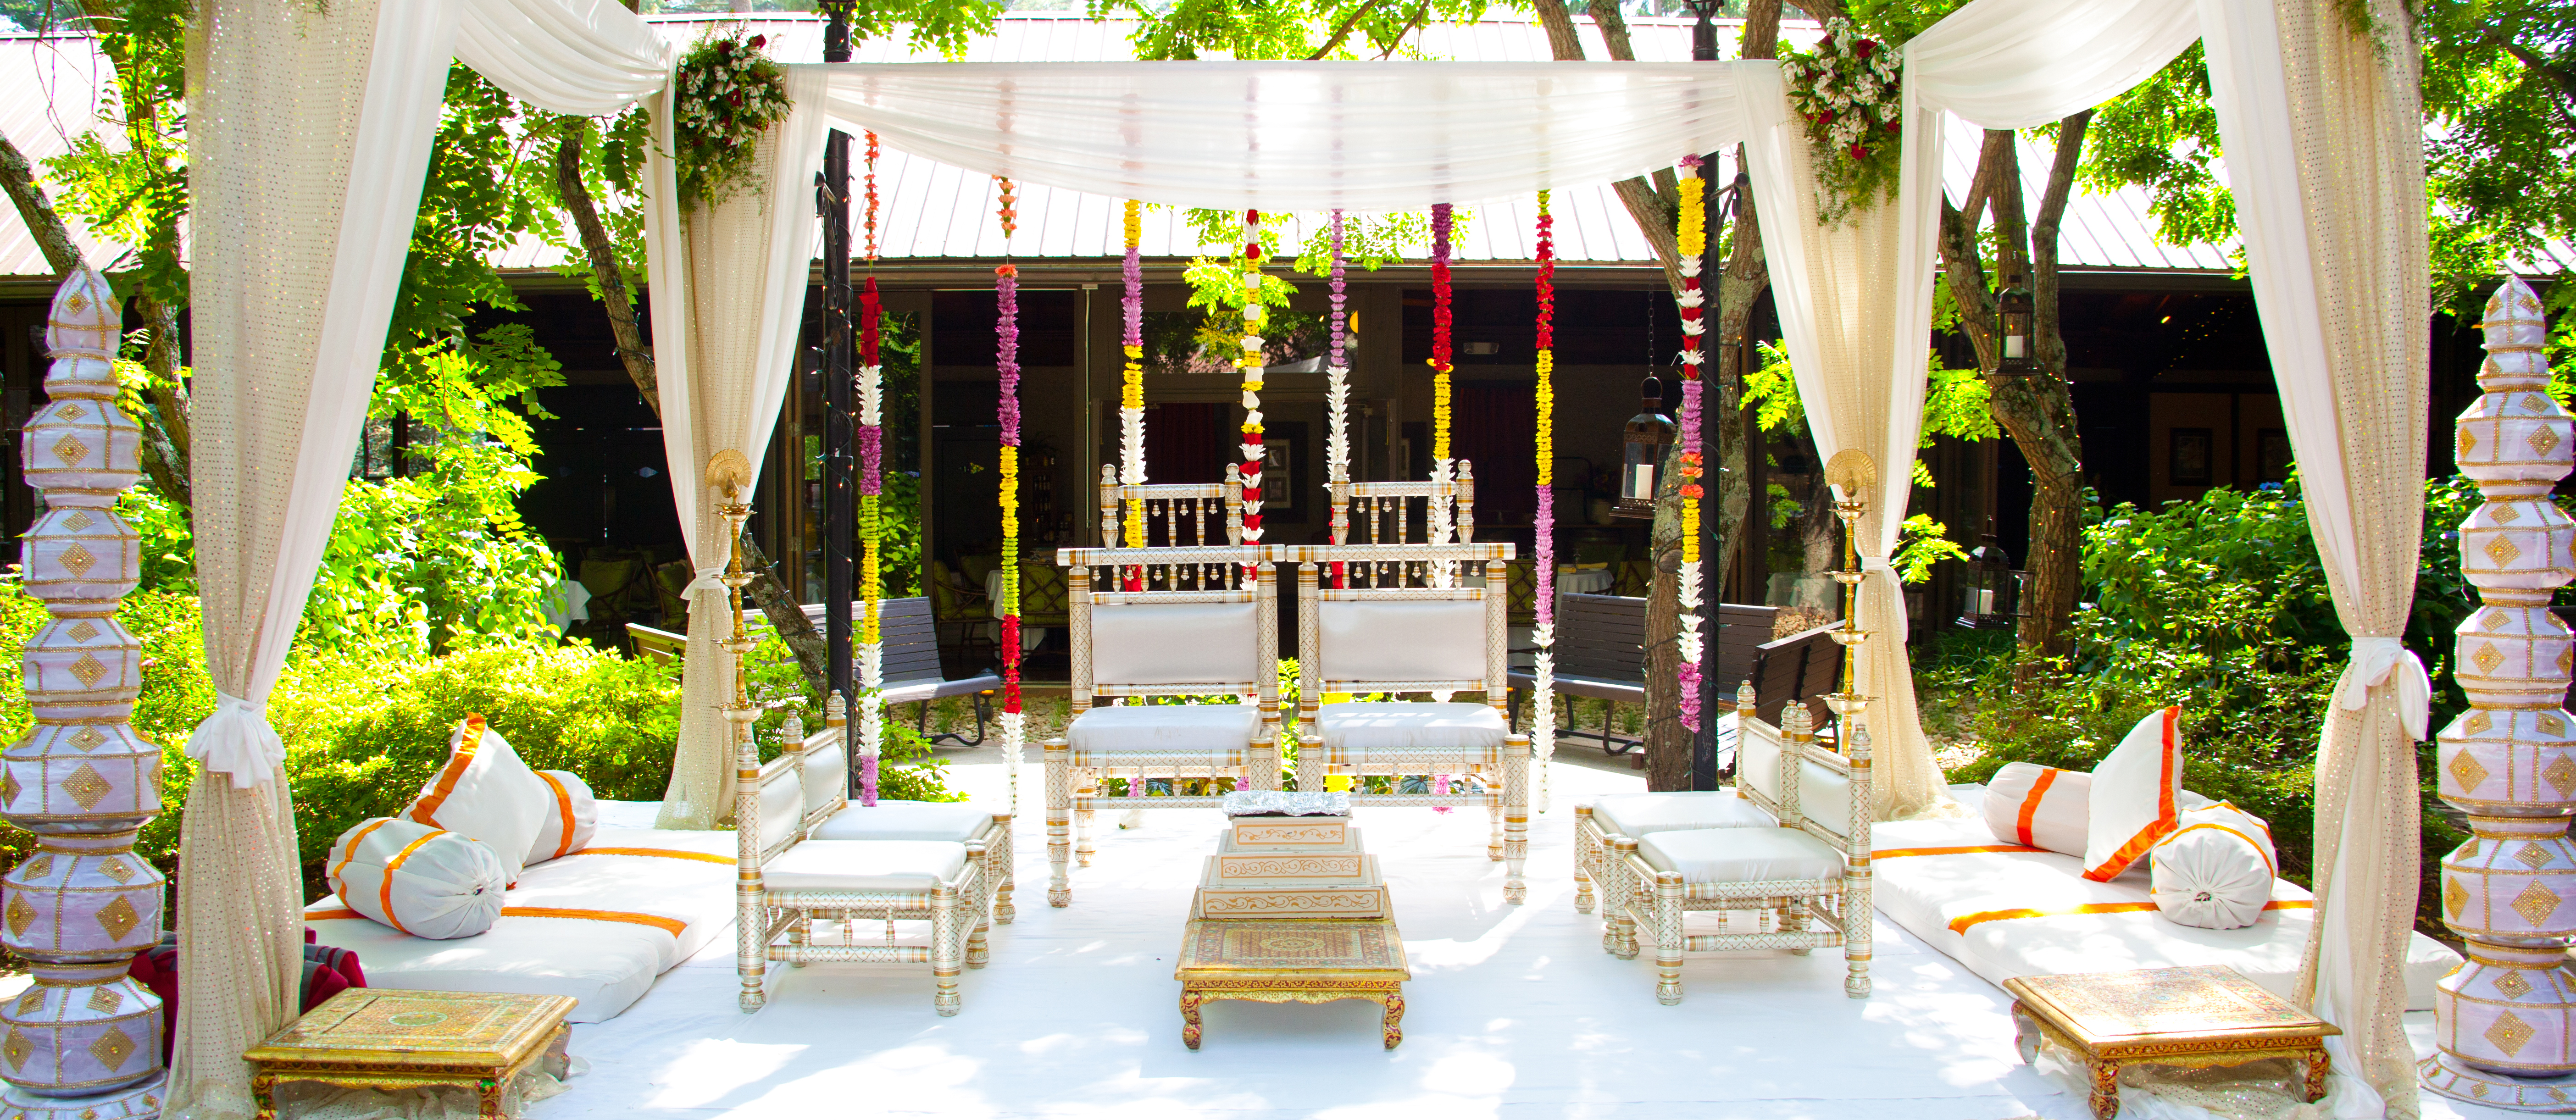 Beautiful outdoor ceremony set up with fabric canopy and floral decorations